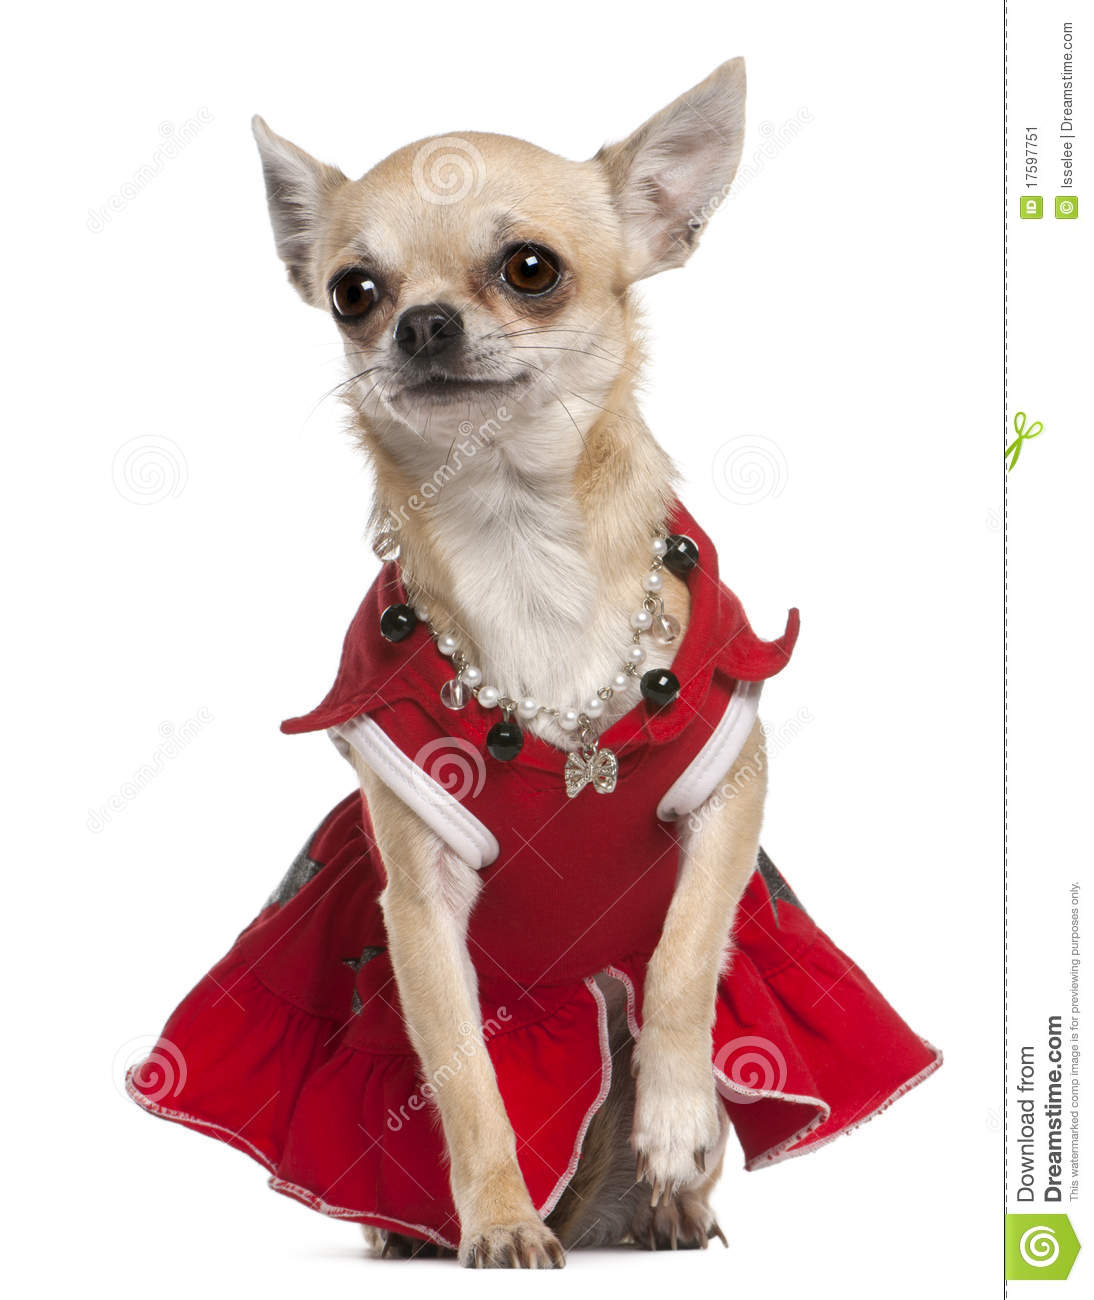 Chihuahua dressed in red dress and necklace sitting in front of white